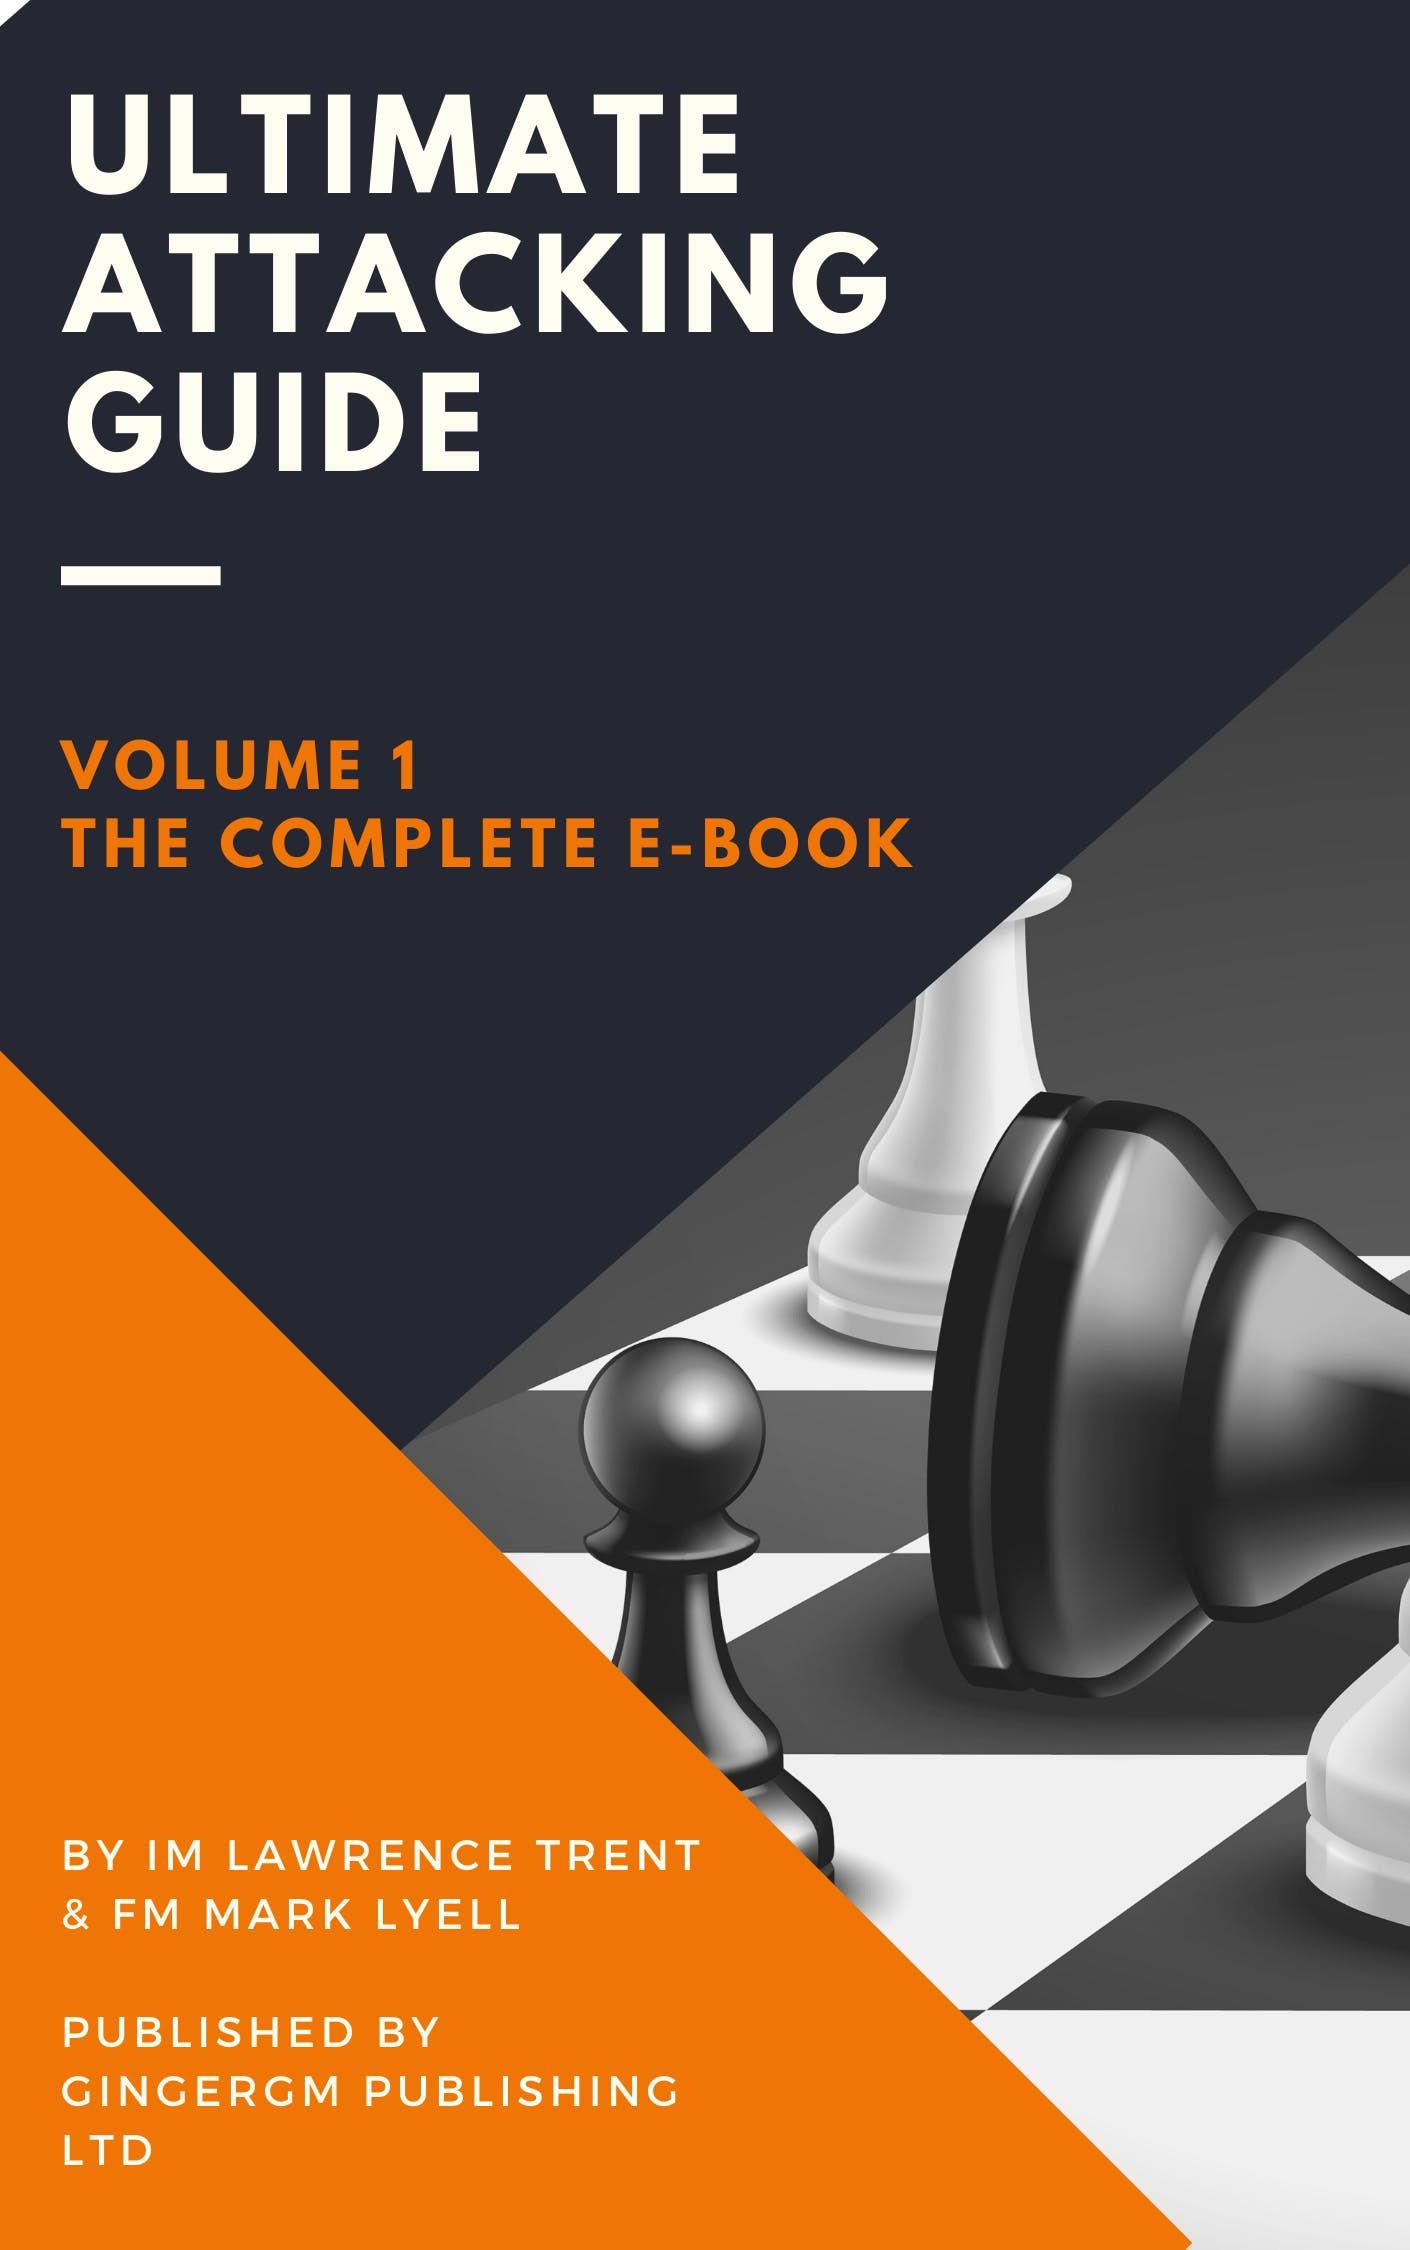 The Ultimate Attacking Guide Volume 1 eBook